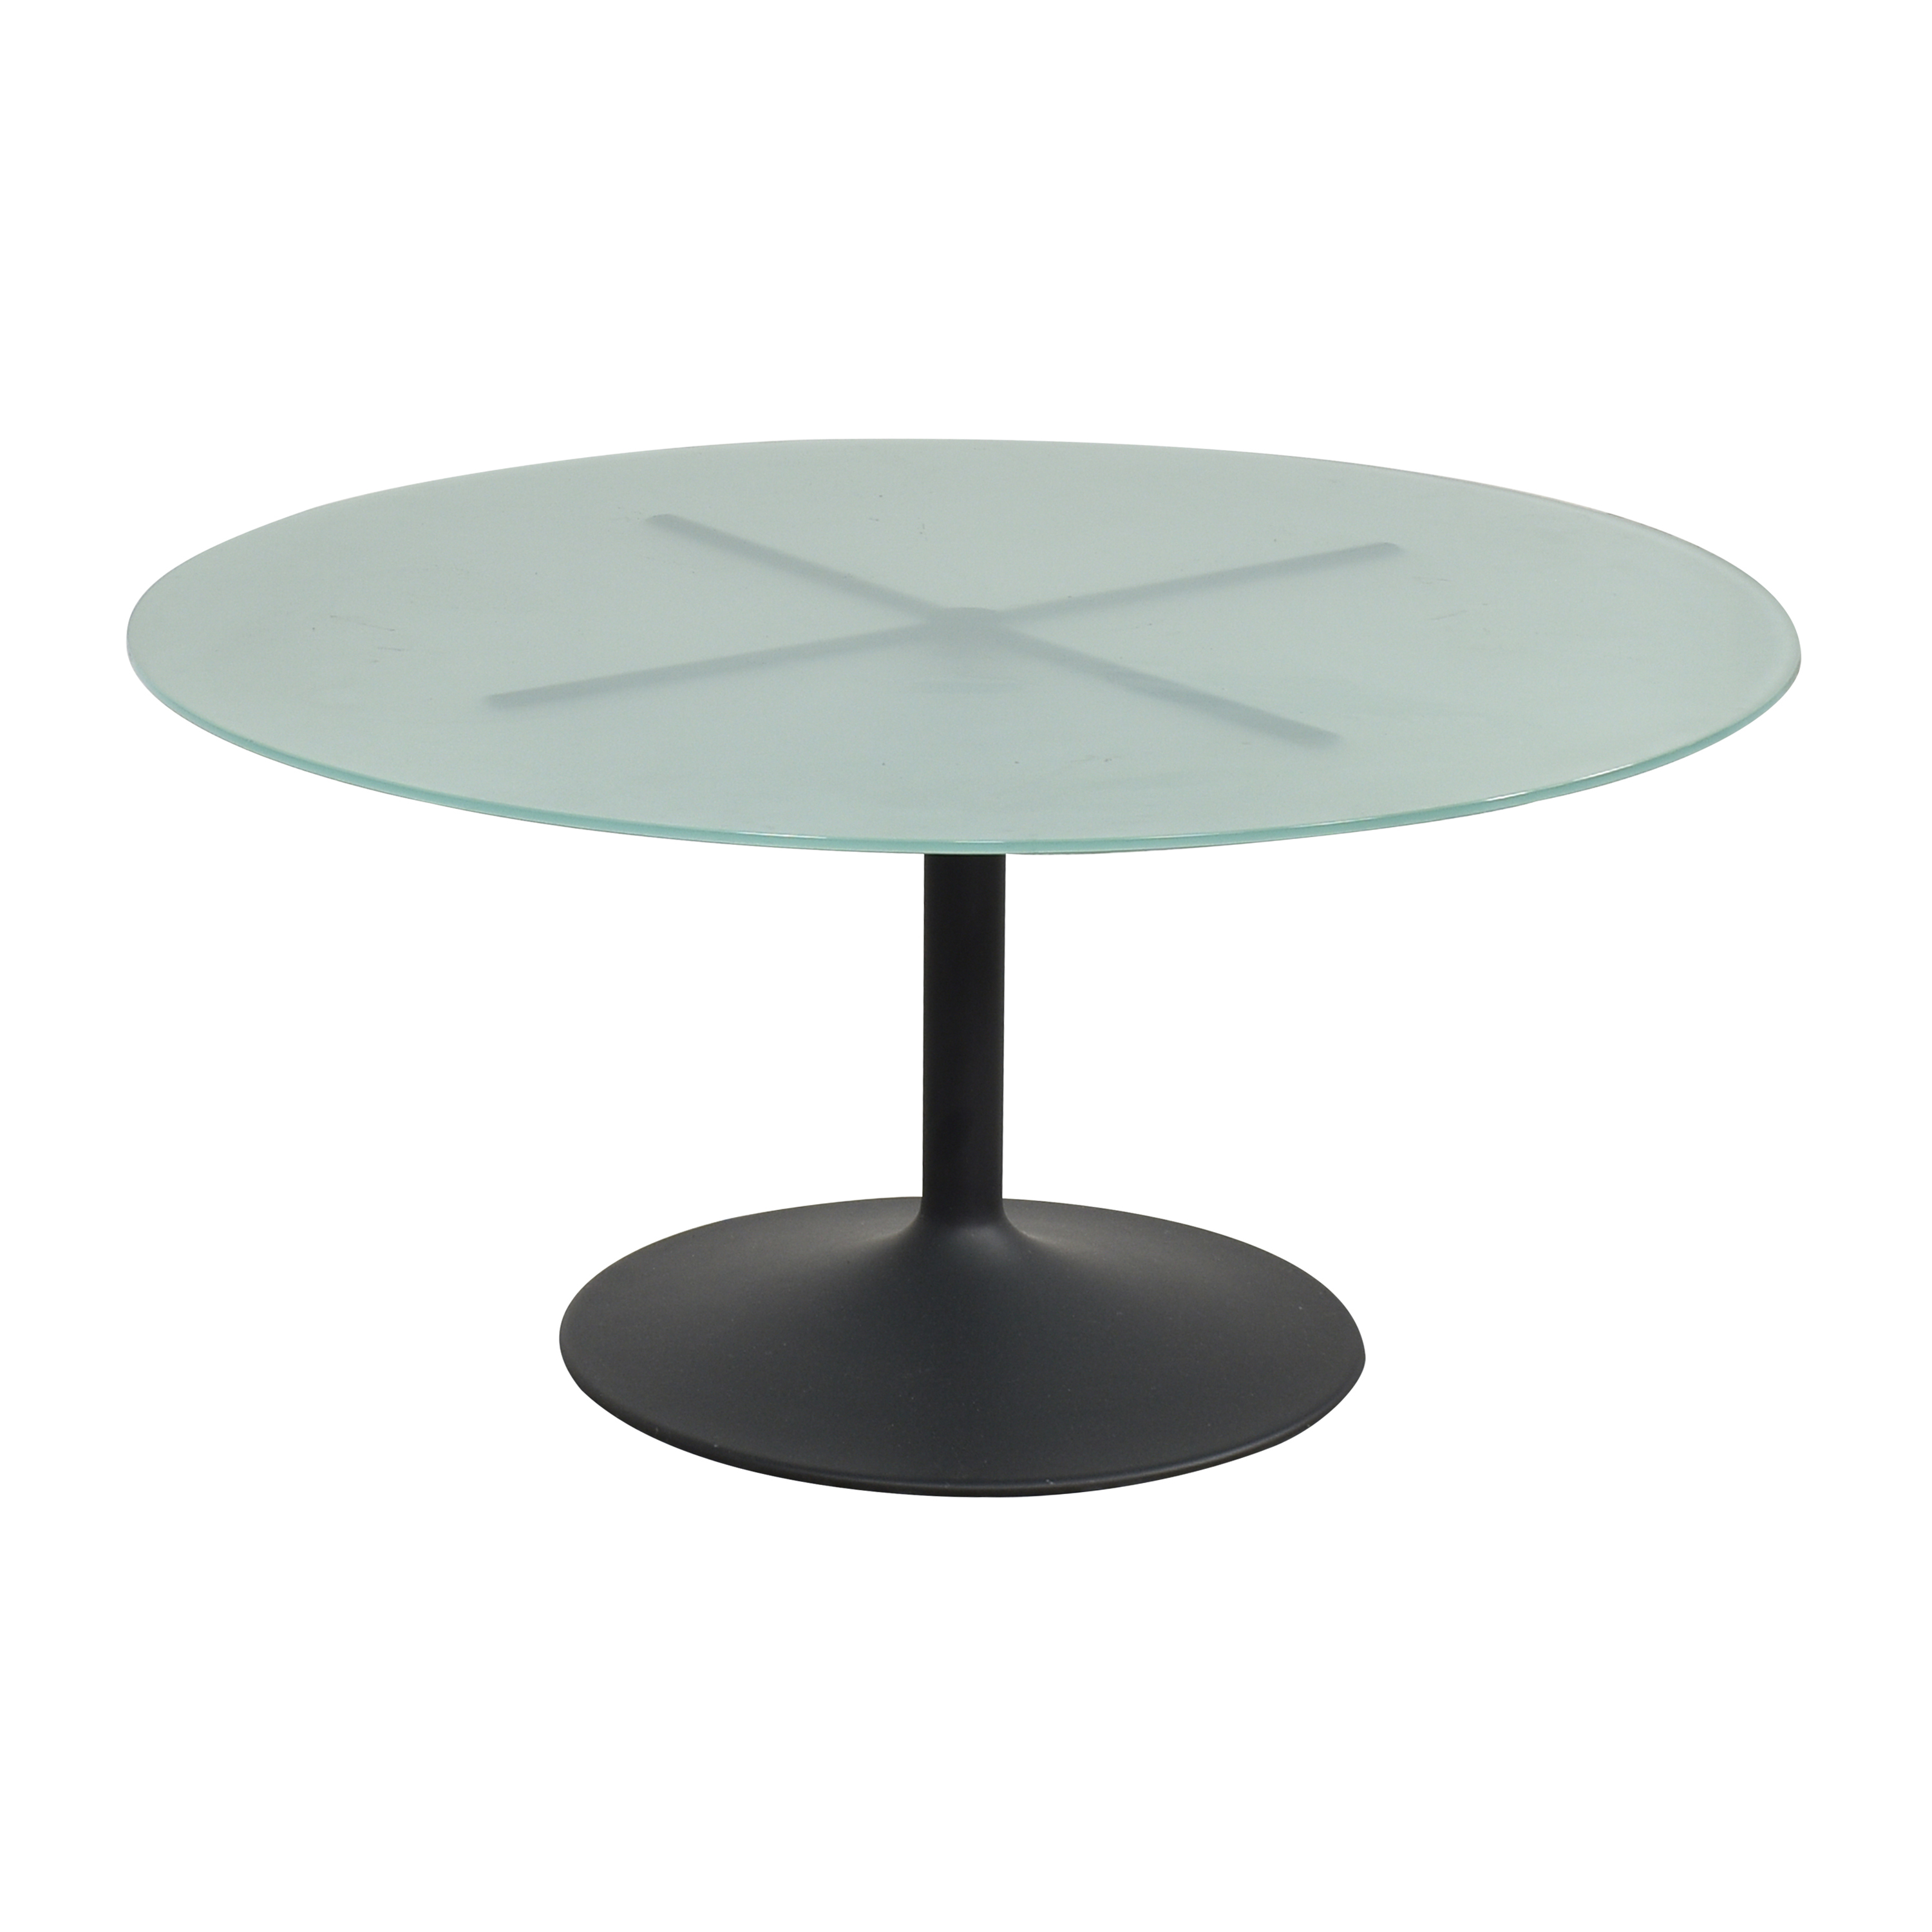 buy Room & Board Room & Board Aria Round Pedestal Dining Table online